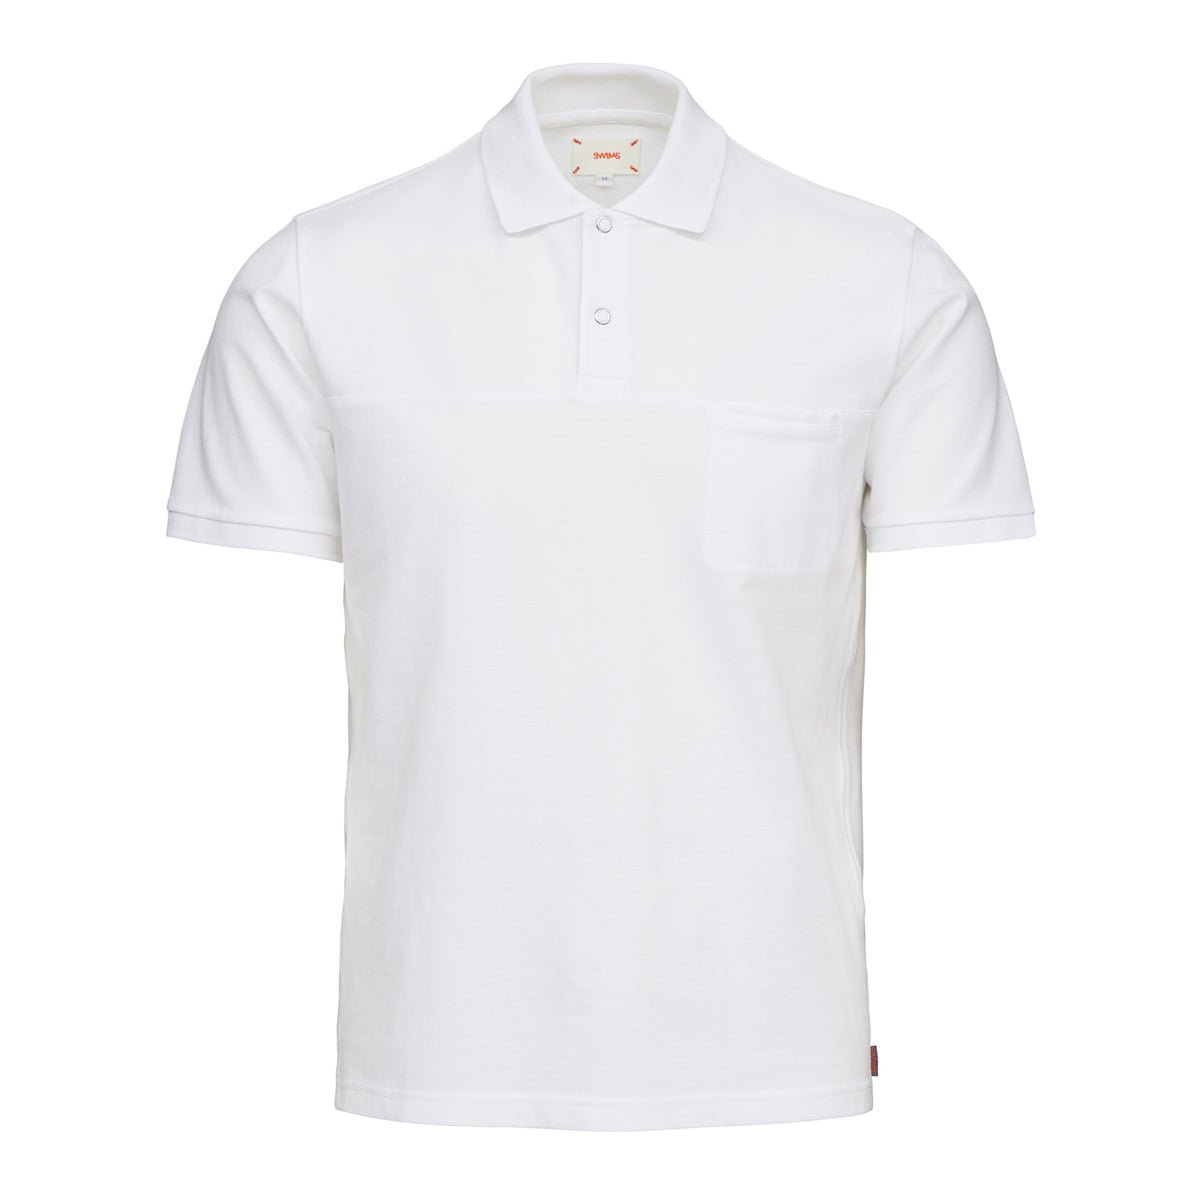 Breeze Polo Shirt - background::white,variant::White